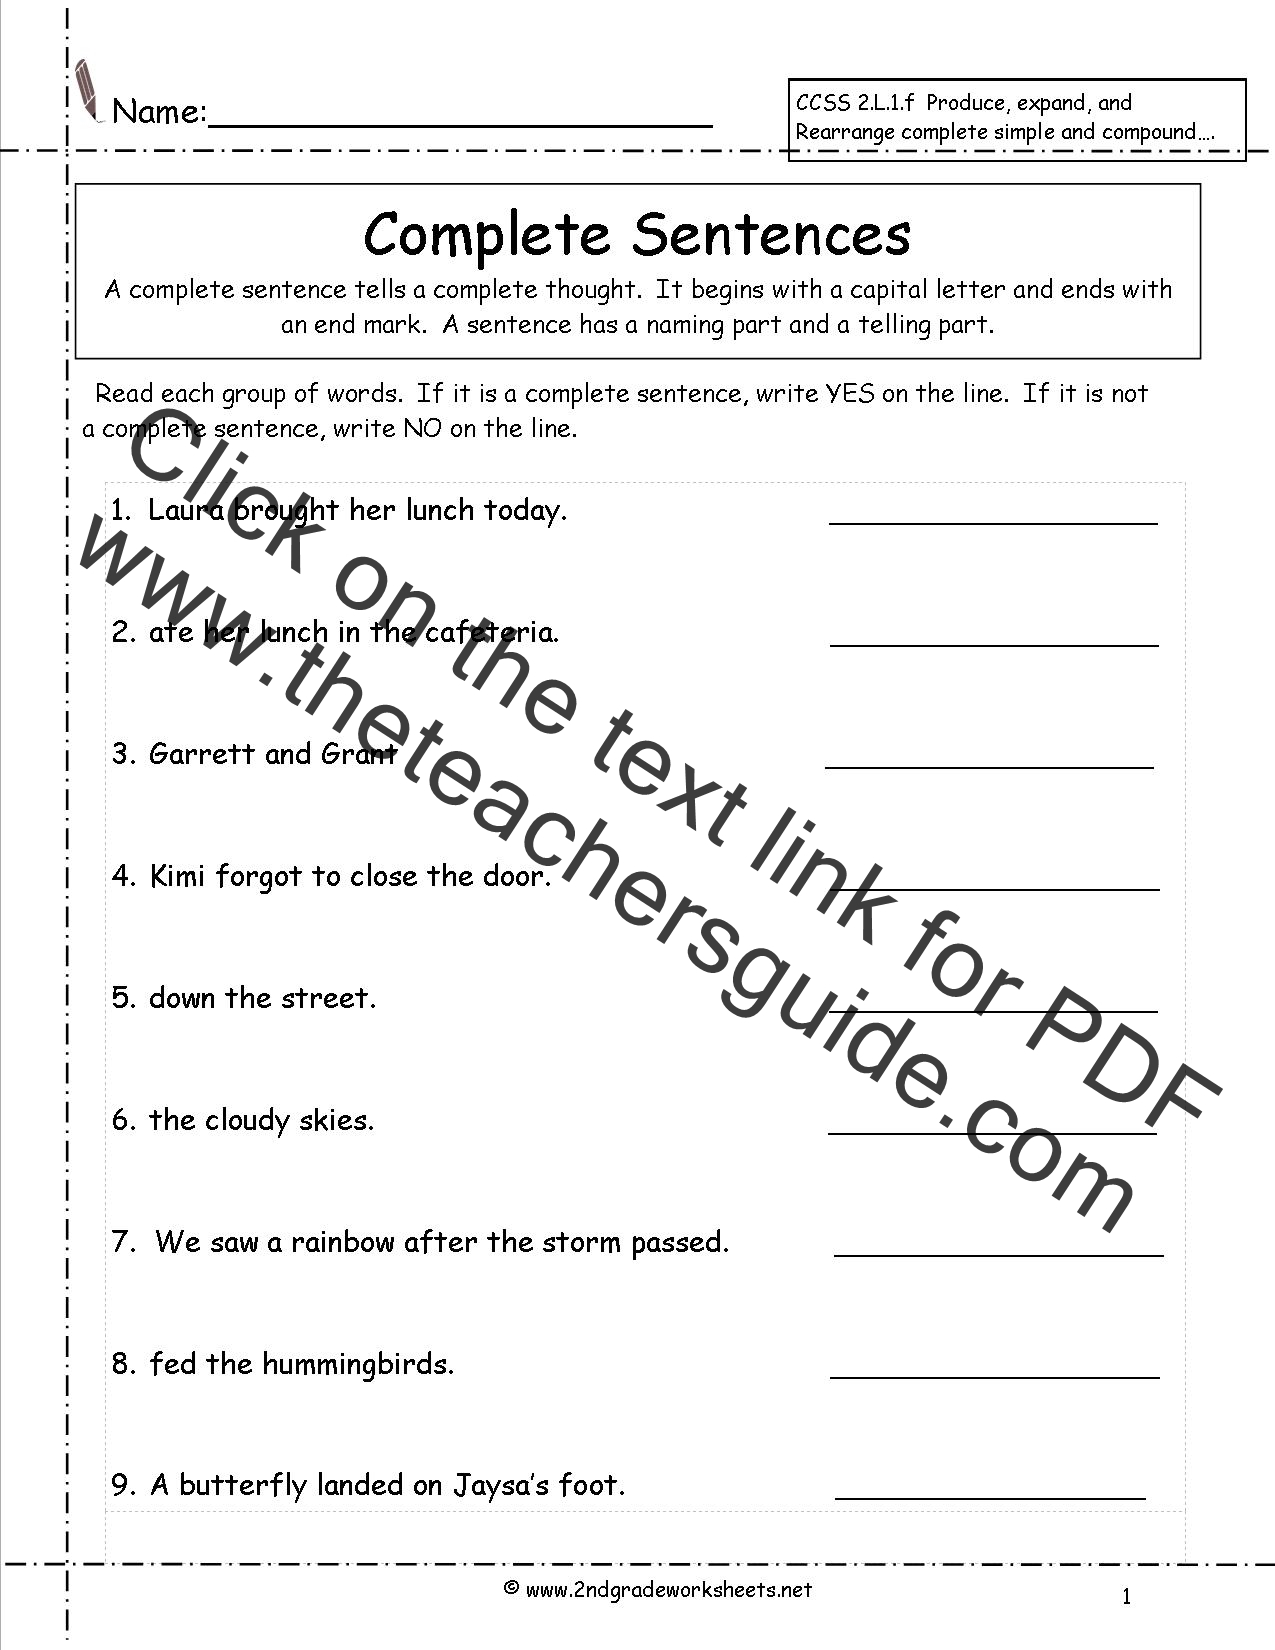 Printables Simple Sentence Worksheet second grade sentences worksheets ccss 2 l 1 f complete worksheets